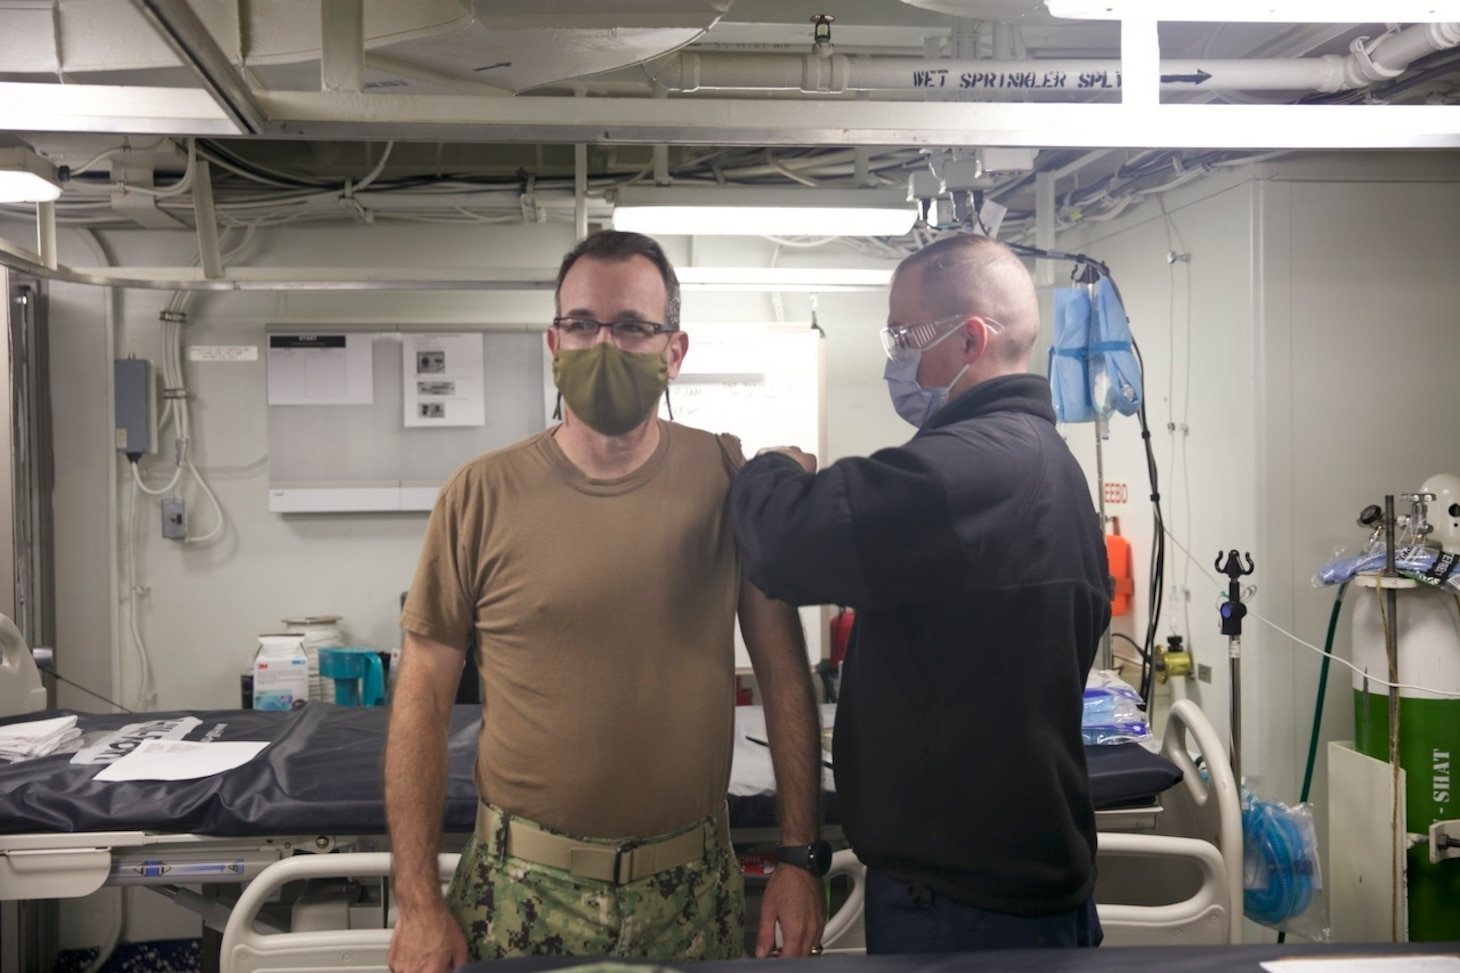 Rear Adm. Robert Katz, commander, Expeditionary Strike Group (ESG 2), receives the COVID-19 vaccination aboard the amphibious transport dock ship USS San Antonio (LPD 17), Jan. 11, 2021.